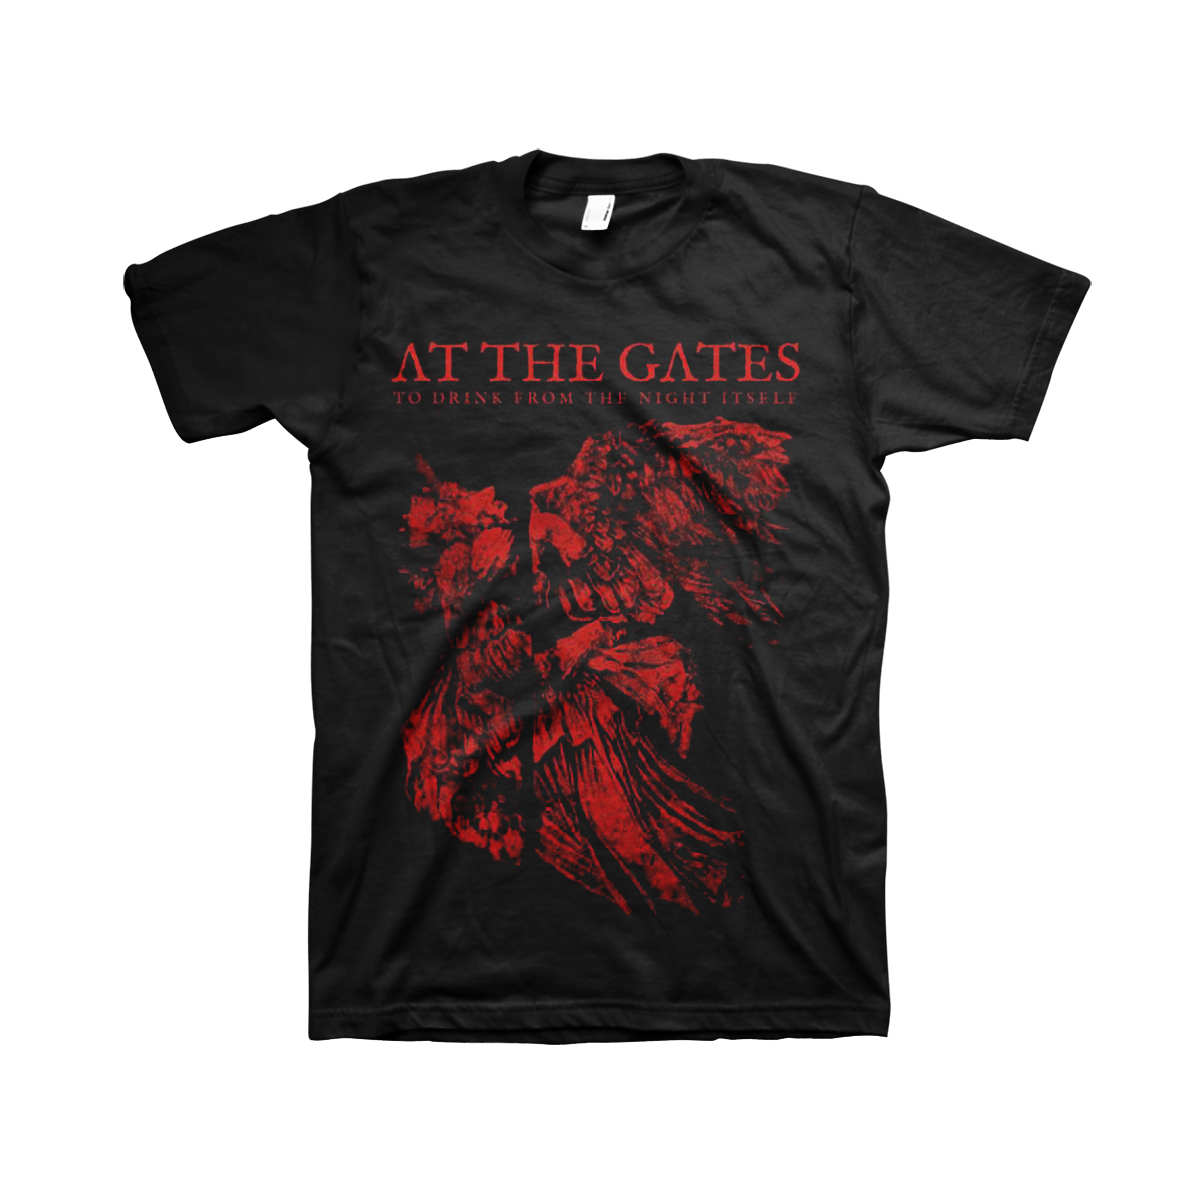 At The Gates - To Drink From The Night Itself T-Shirt